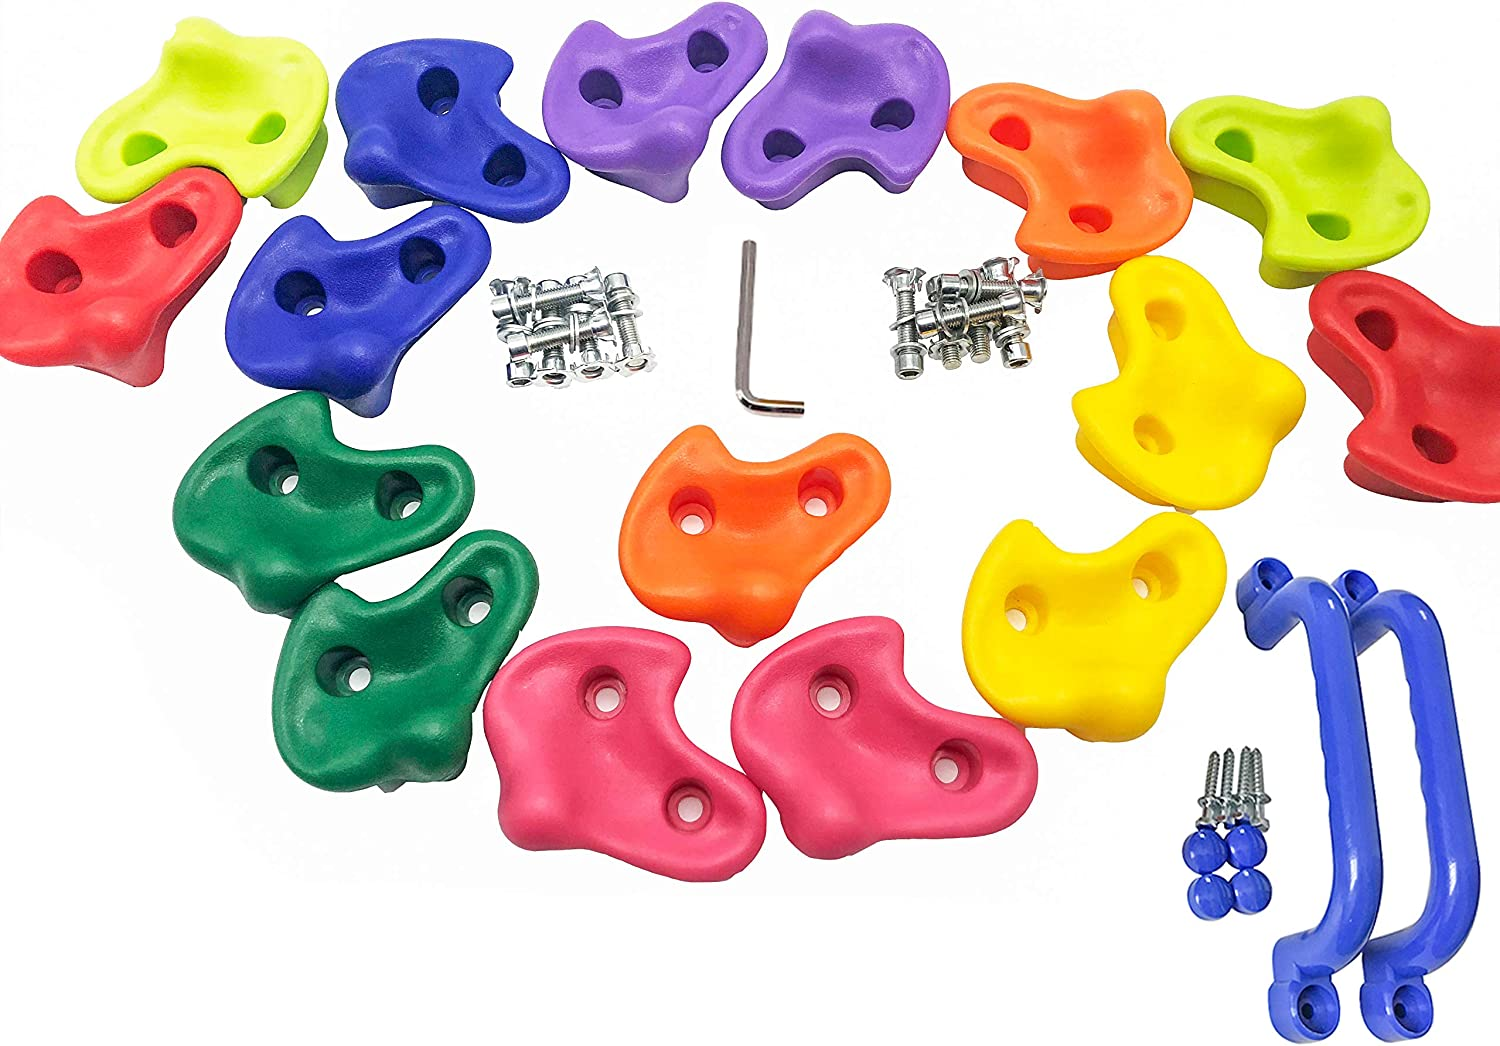 KINSPORY 16 Oversized Colourful Pig Nose Shape Children Rock Climbing Holds Indoor Outdoor Kids Playground Build with Two Blue Handles - Mounting Hardware Kit Included